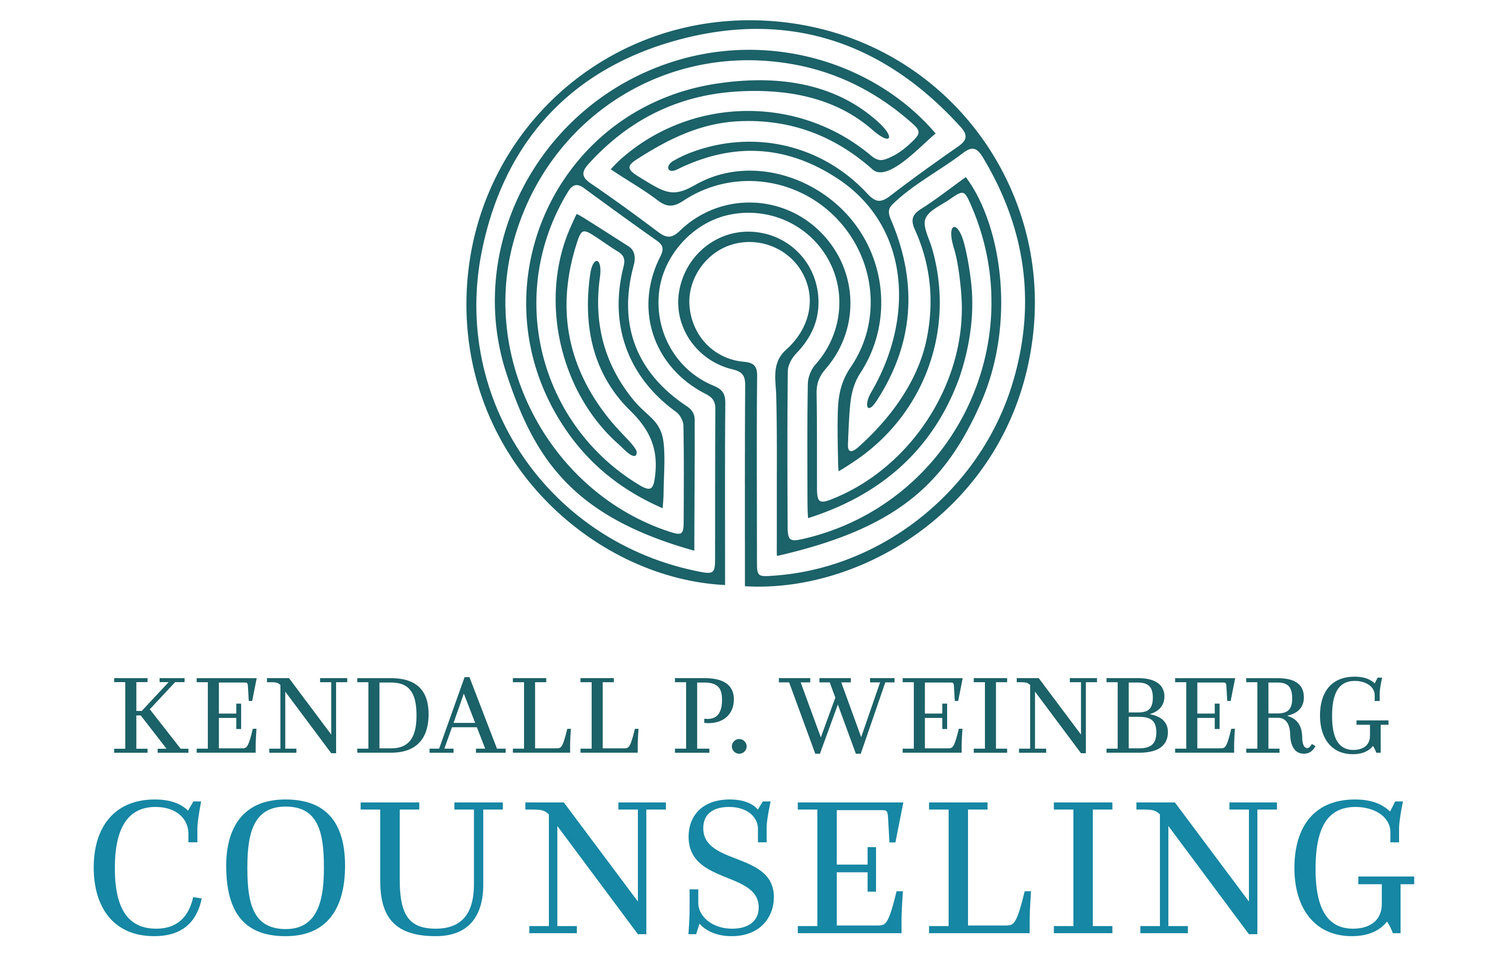 Kendall P. Weinberg Counseling, LLC